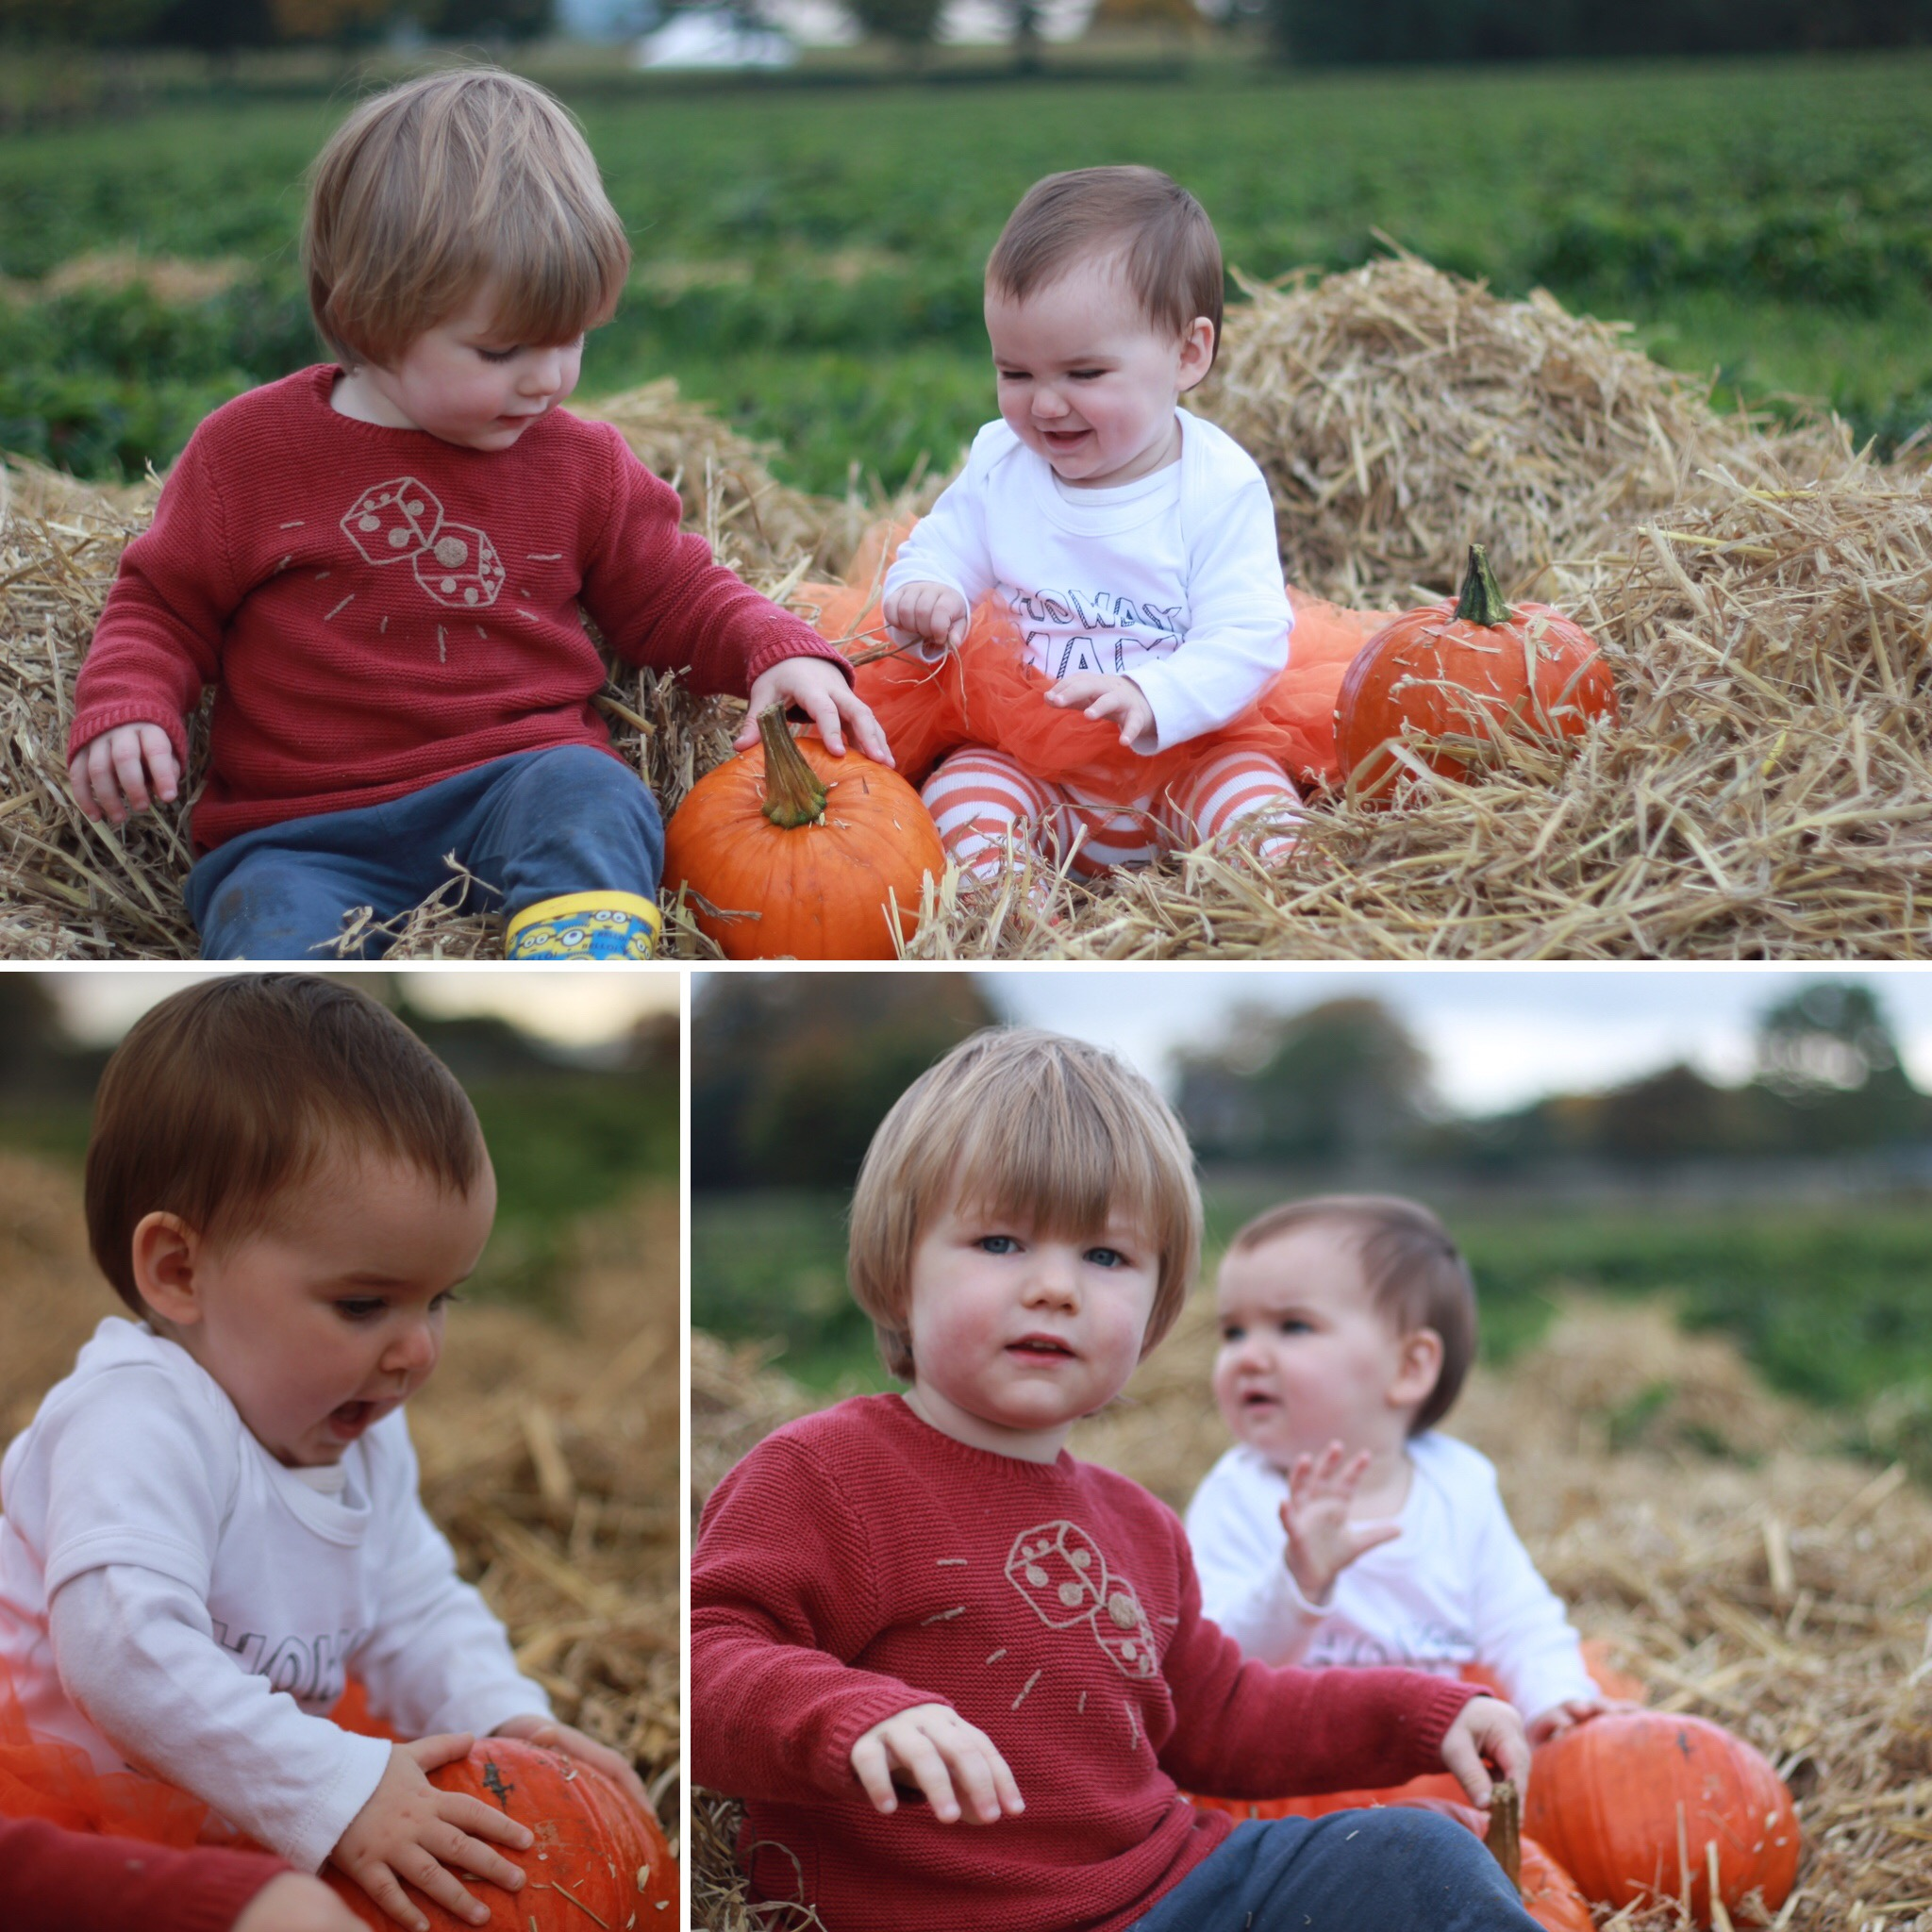 Brocksbushes farm shop and tea room Halloween 2016 Northumberland pumpkin patch kids events baby toddler. Eileen and Joe children's entertainer dressed as a witch, with a toddler. Siblings play in a pumpkin patch.